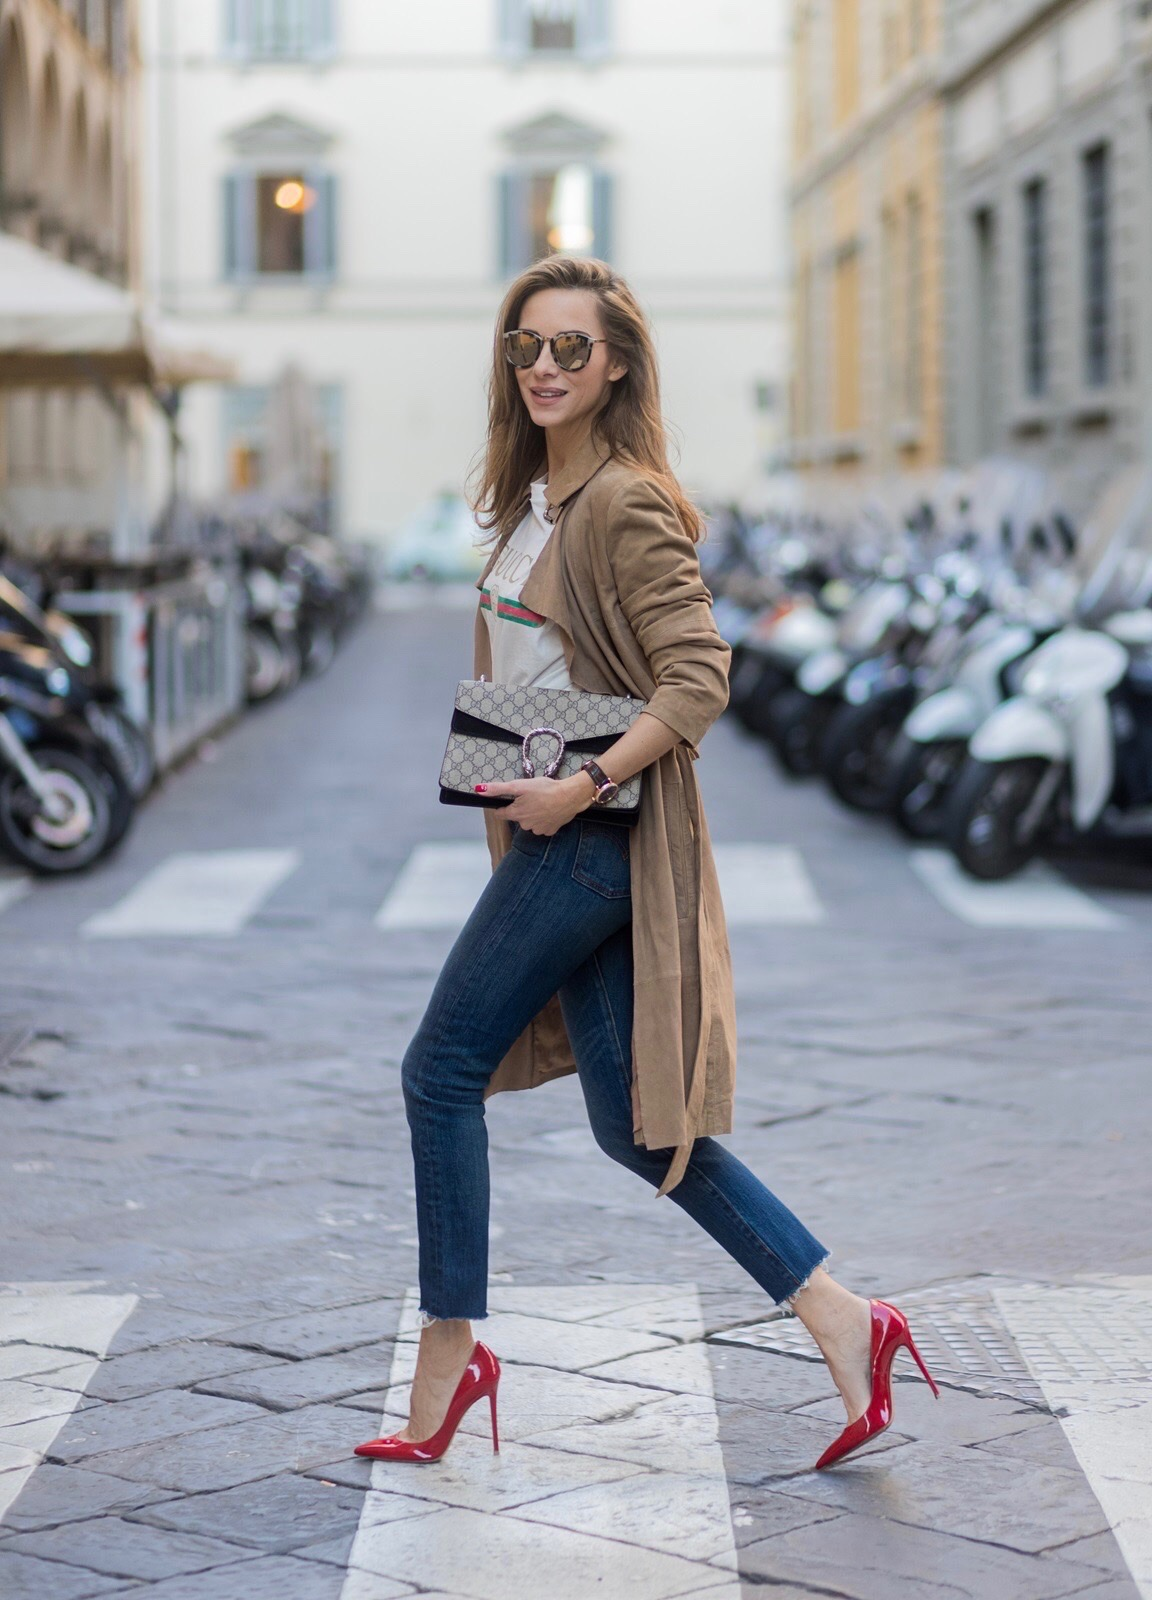 ece2102a ... ITALY - JANUARY 11: German fashion blogger and model Alexandra Lapp is  wearing ...